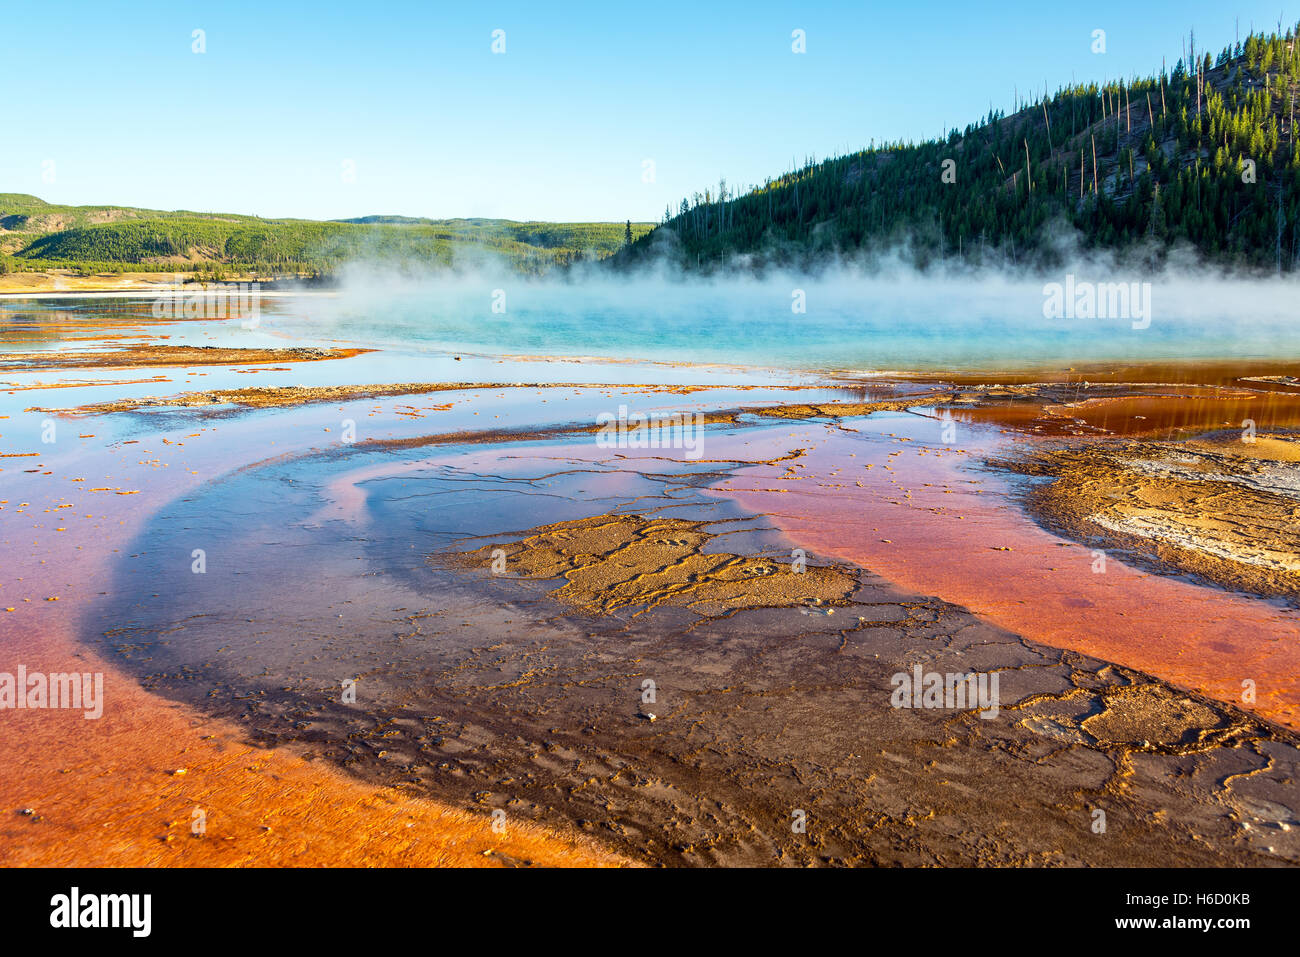 Steam rising from Grand Prismatic Spring in Yellowstone National Park - Stock Image